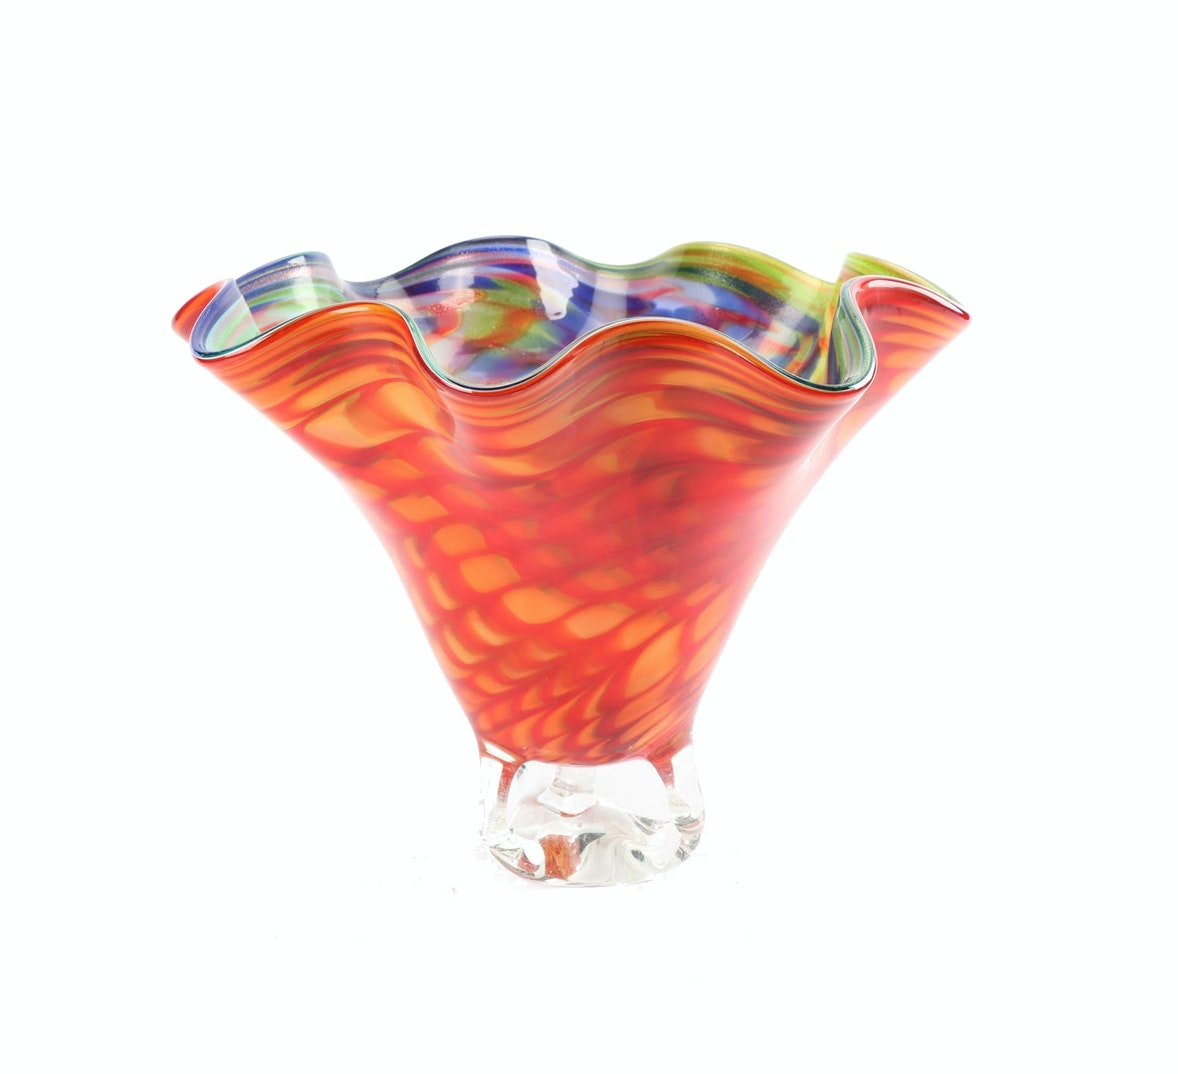 Art Glass, Collectibles, Décor & More